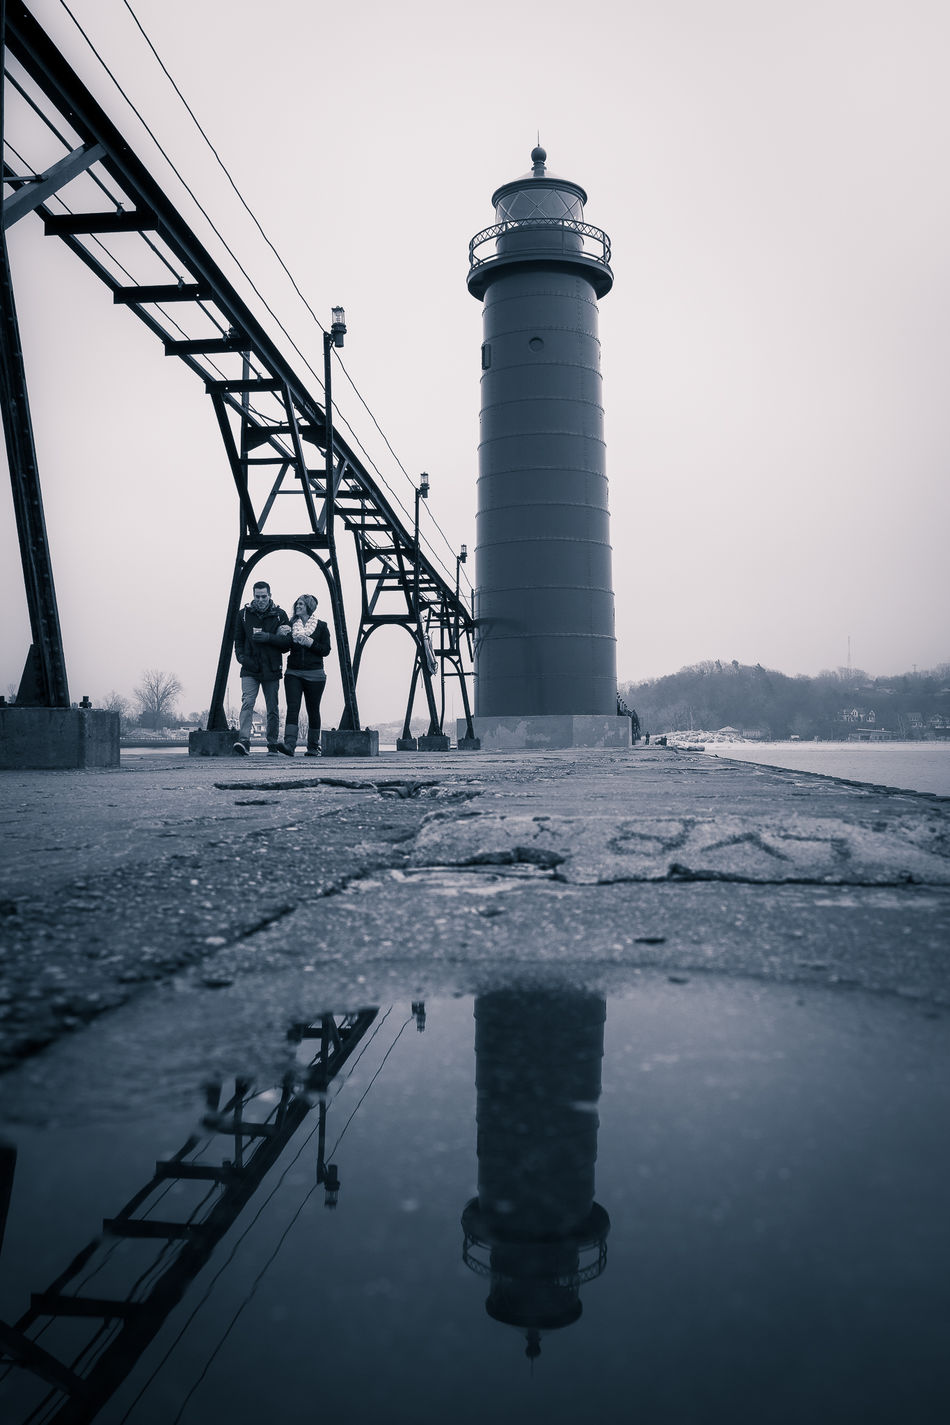 Beautiful stock photos of liebespaar, water, architecture, protection, lighthouse